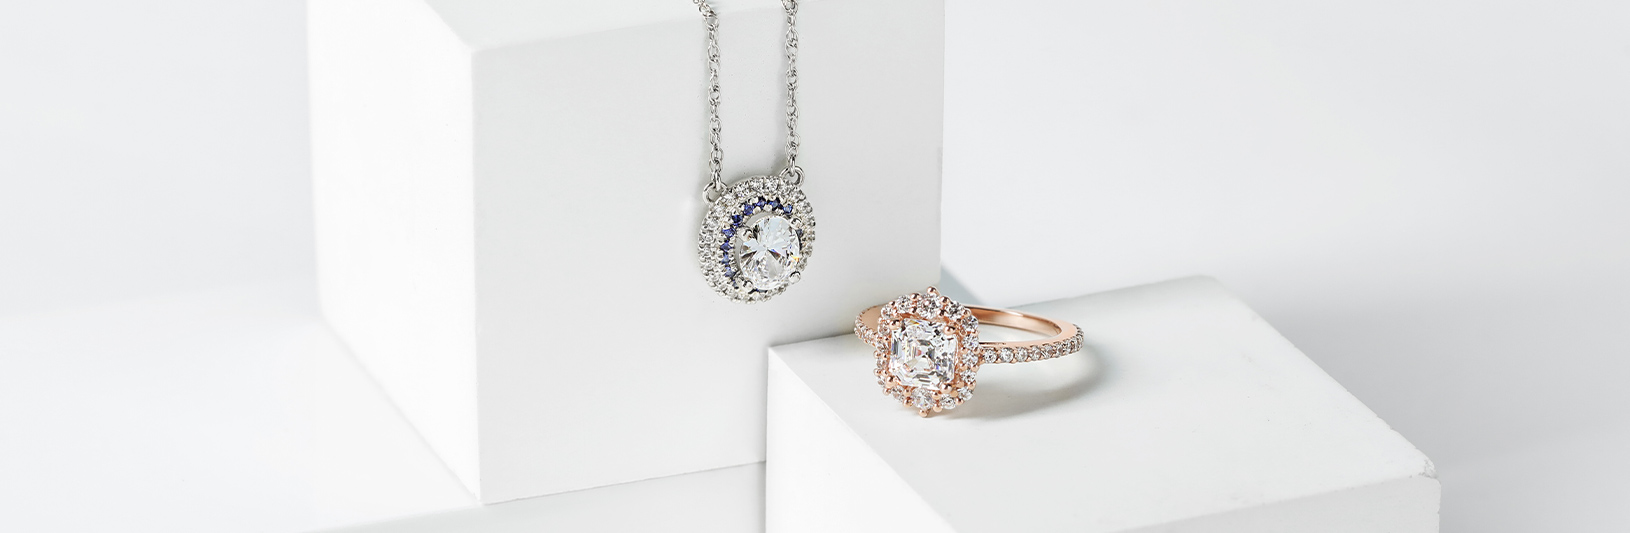 A necklace and engagement ring with vintage design elements